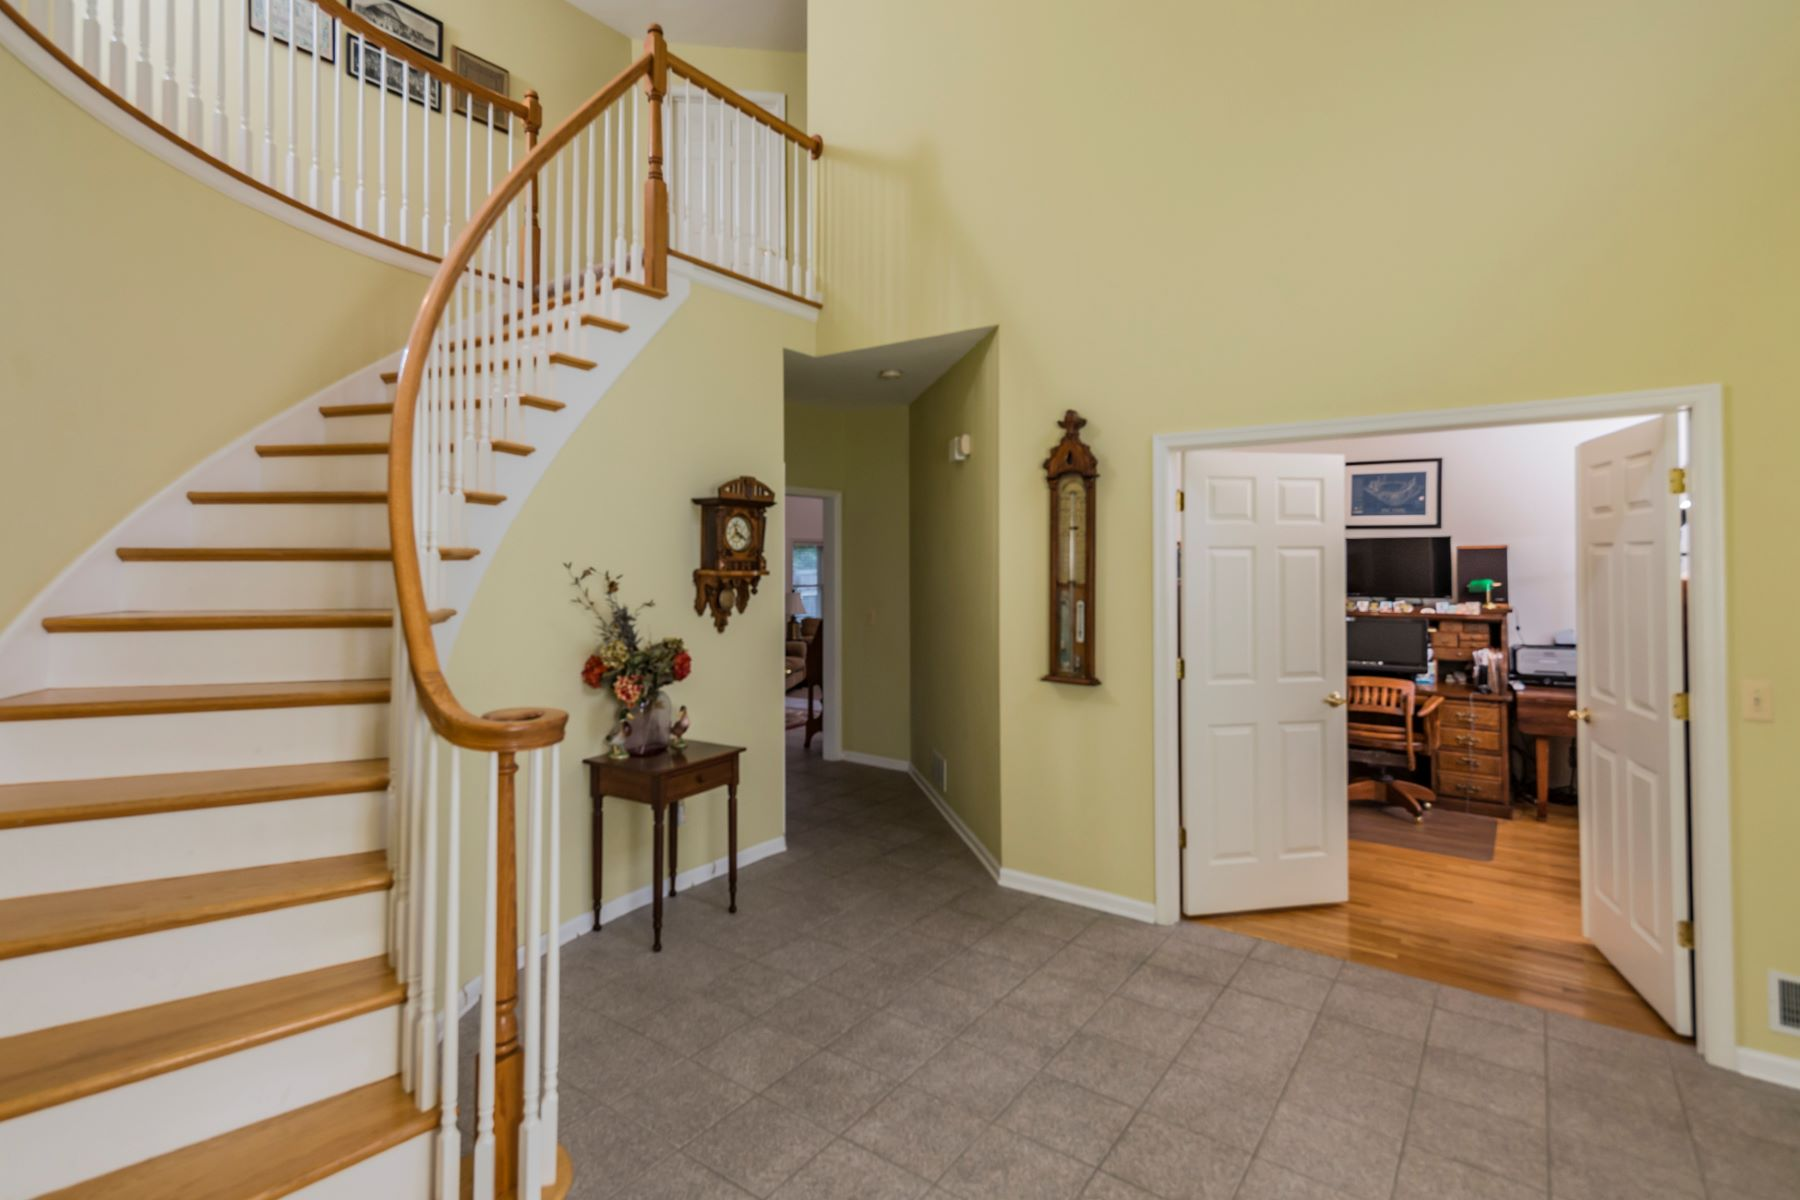 Additional photo for property listing at A Place to Call Home 5 Ringos Mill Road Hopewell, ニュージャージー 08525 アメリカ合衆国